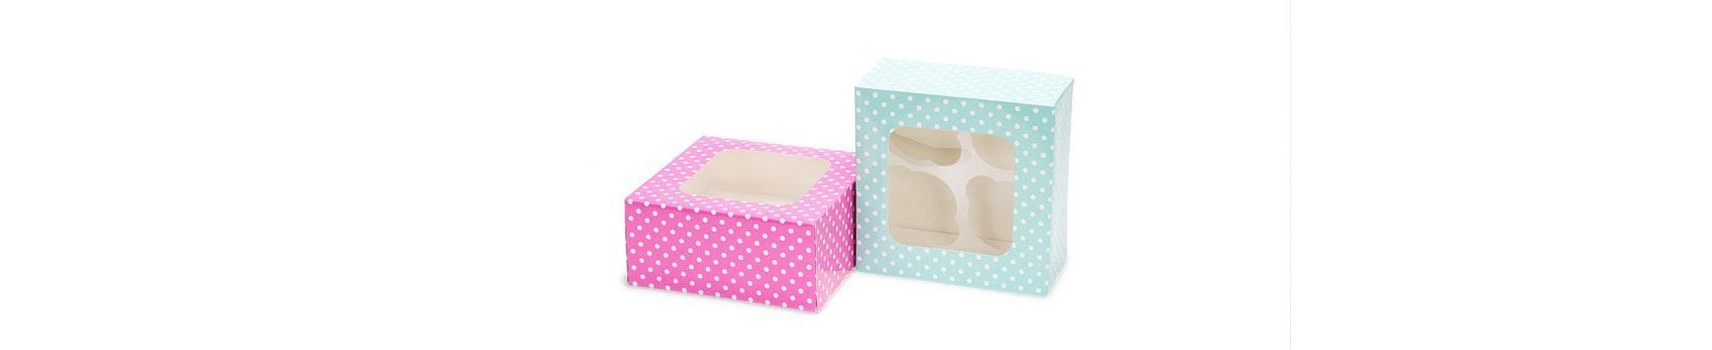 Packaging / Stand